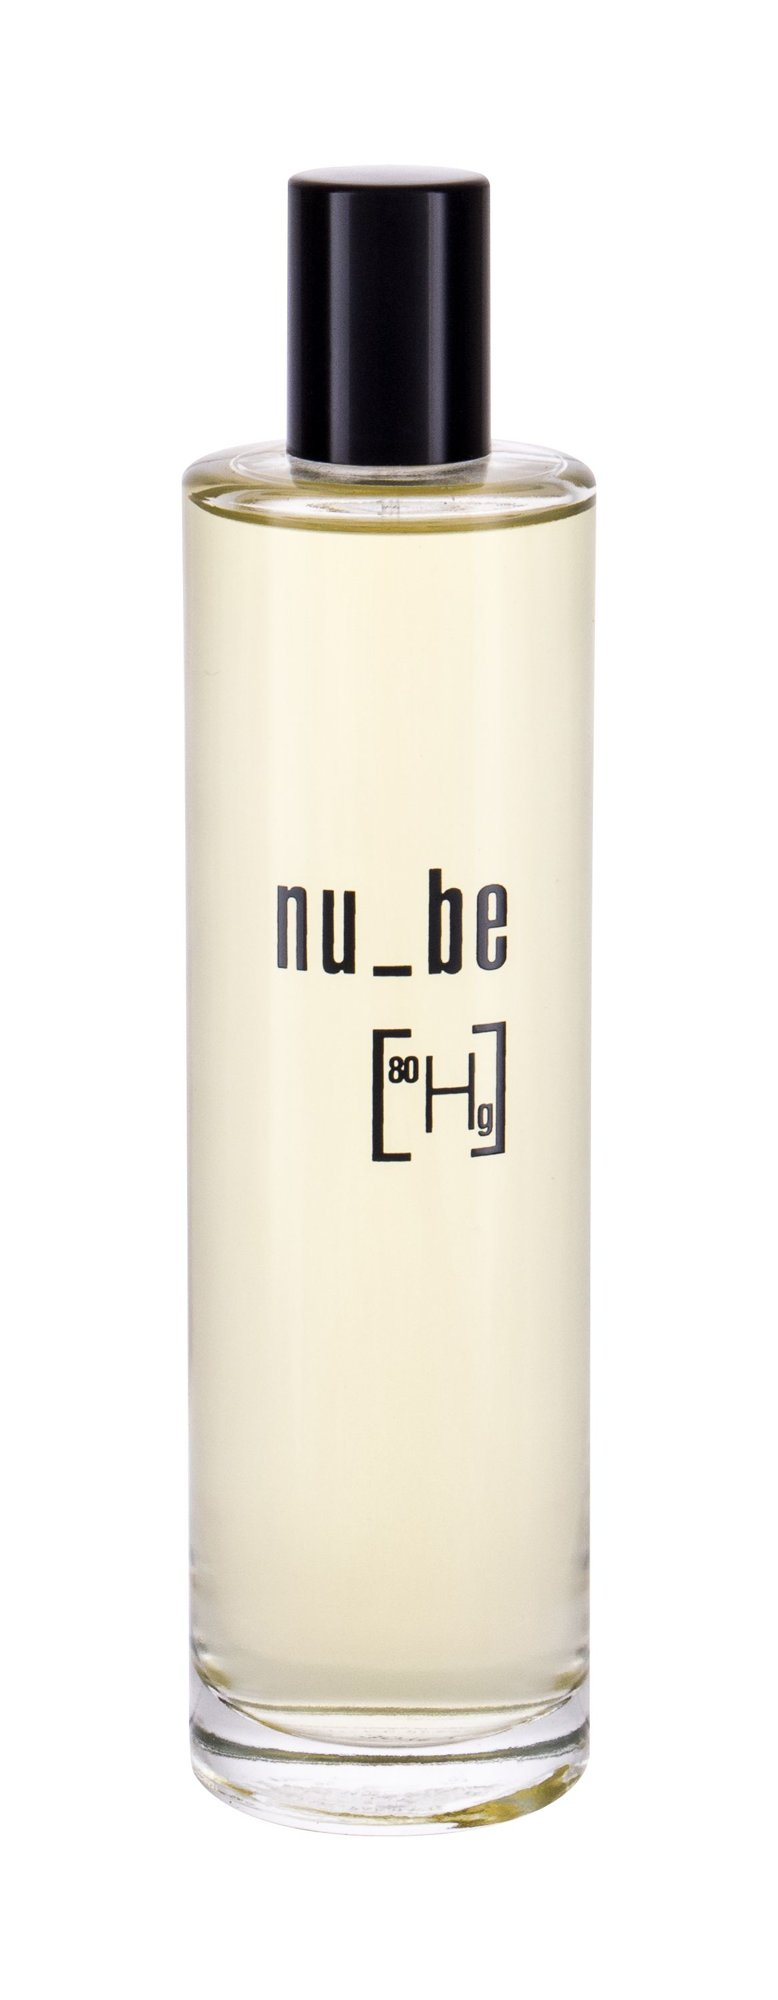 oneofthose NU_BE 80Hg, edp 100ml